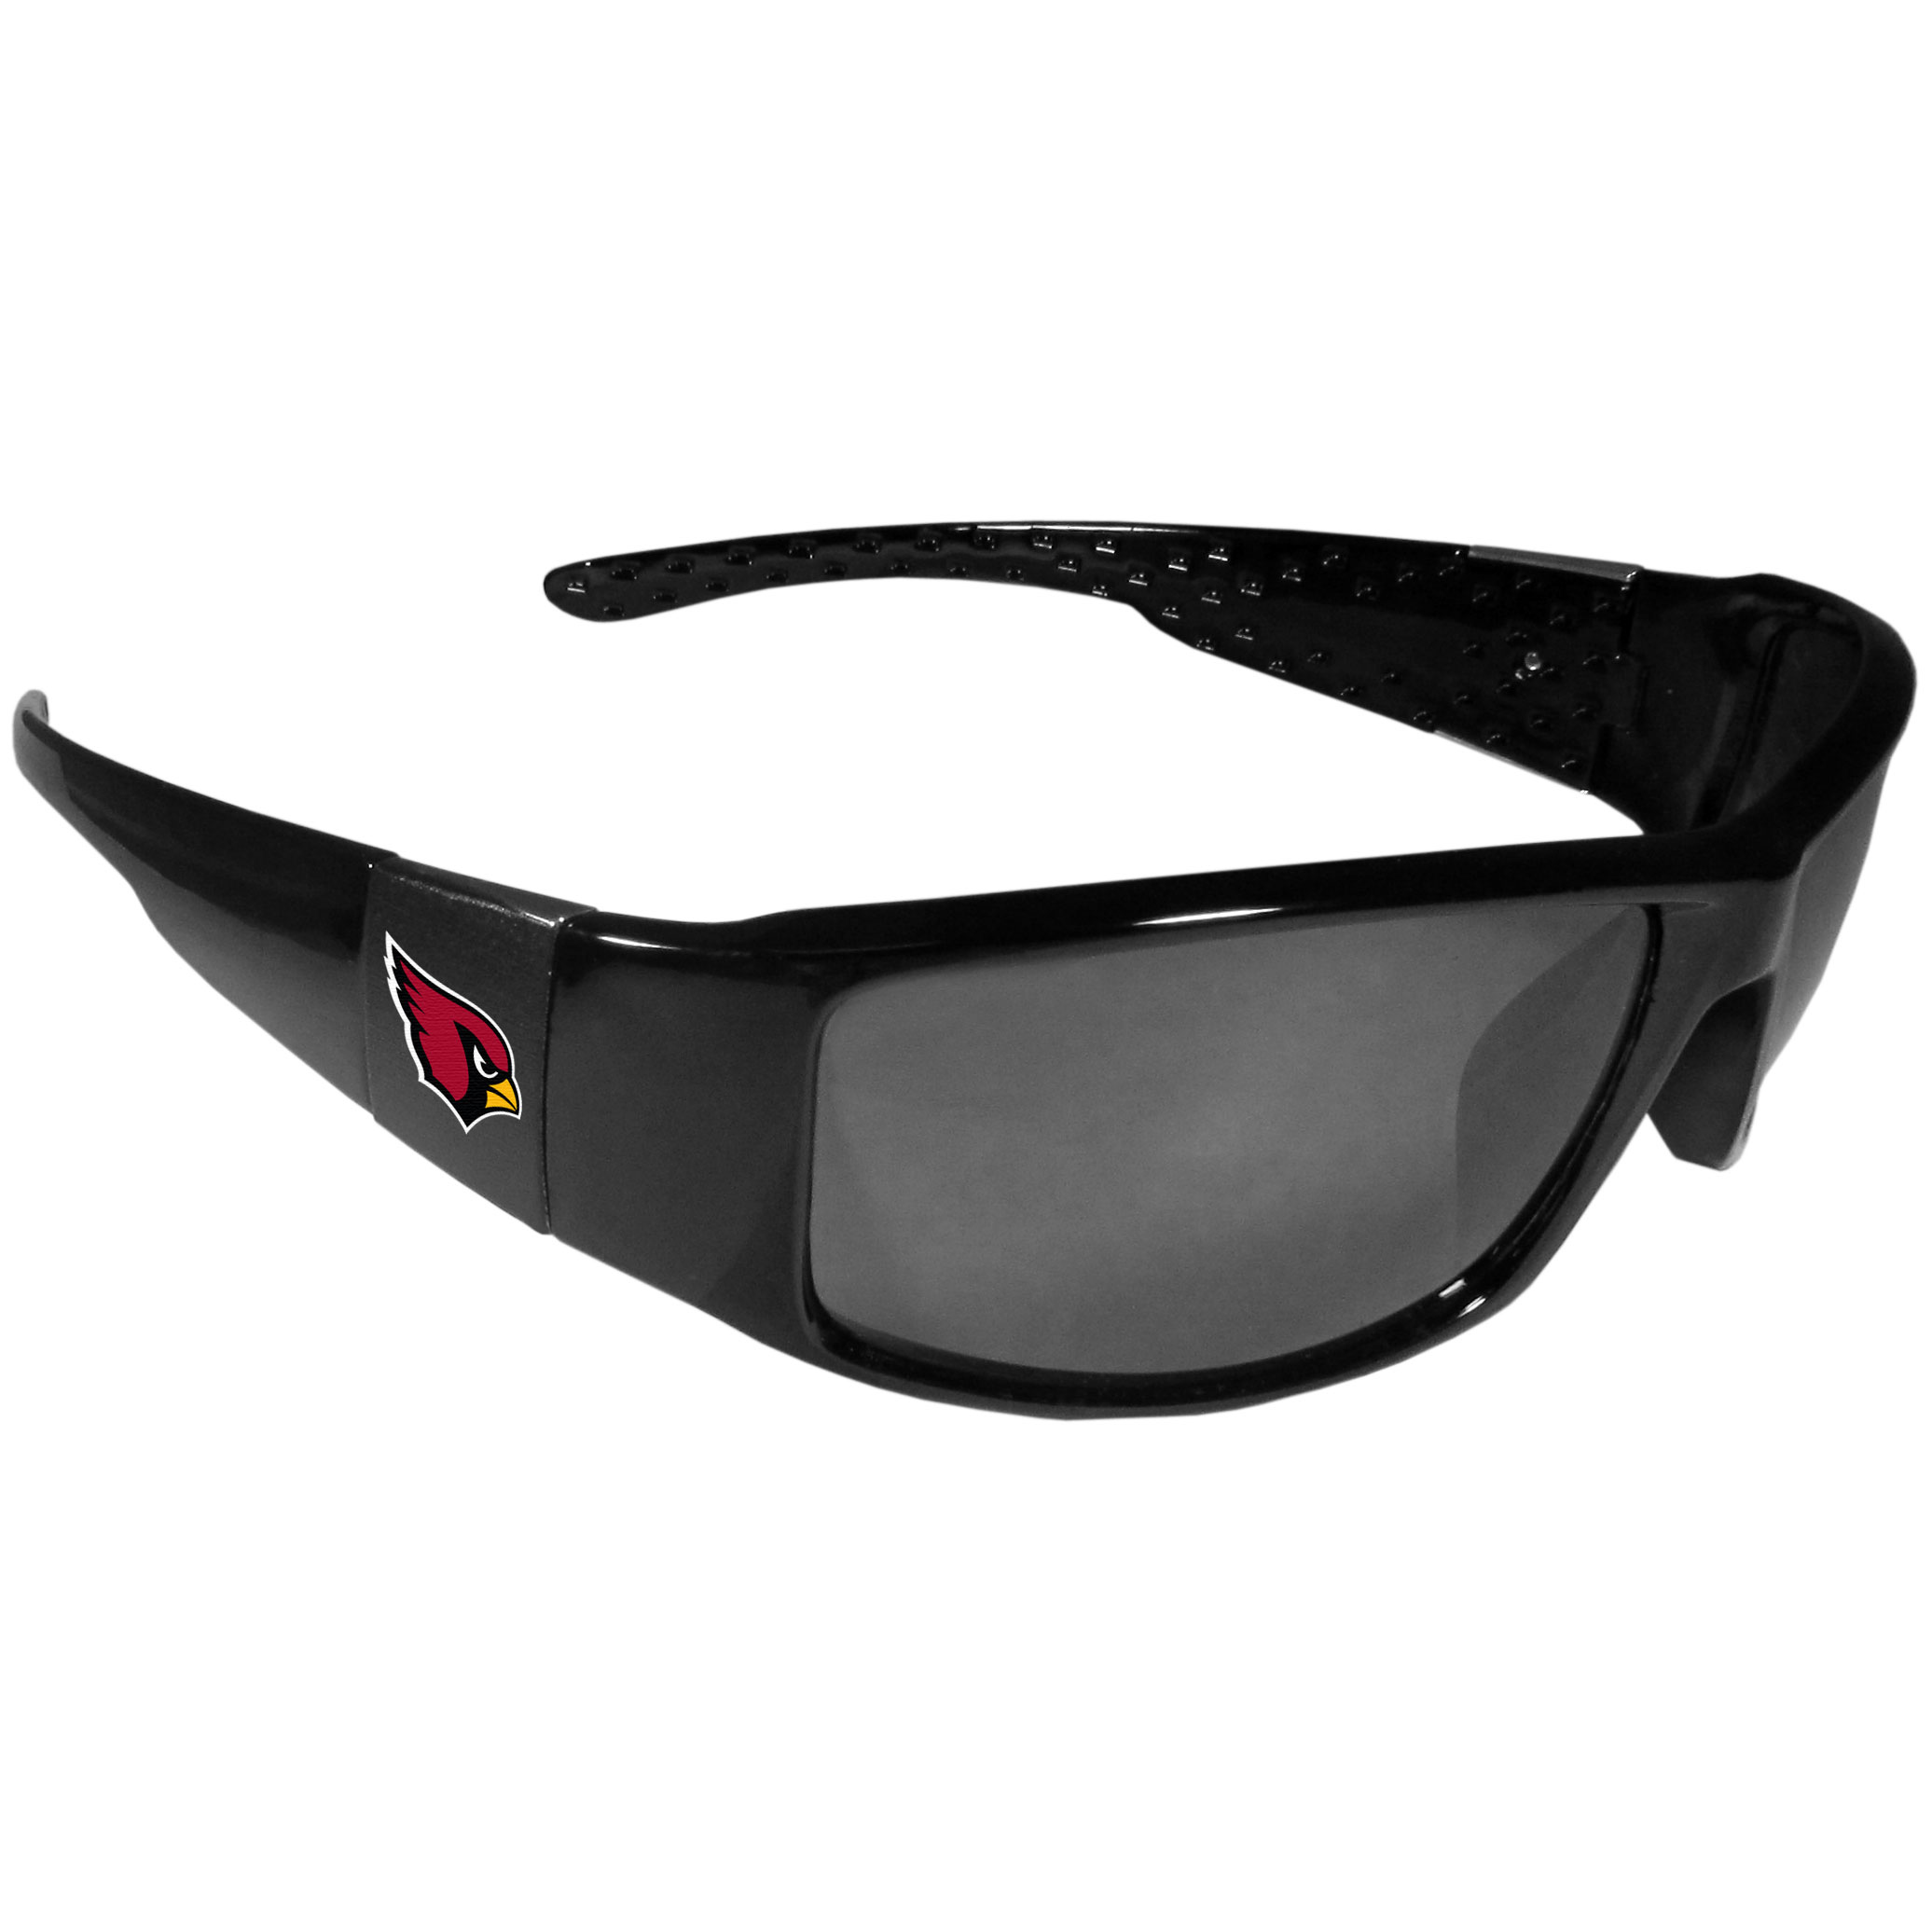 Arizona Cardinals Black Wrap Sunglasses - These designer inspired frames have a sleek look in all black with  Arizona Cardinals shields on each arm with a printed logo. The shades are perfect for any outdoor activity like; golfing, driving, hiking, fishing or cheering on the team at a tailgating event or at a home game day BBQ with a lens rating of 100% UVA/UVB for maximum UV protection. The high-quality frames are as durable as they are fashionable and with their classic look they are the perfect fan accessory that can be worn everyday for every occasion.